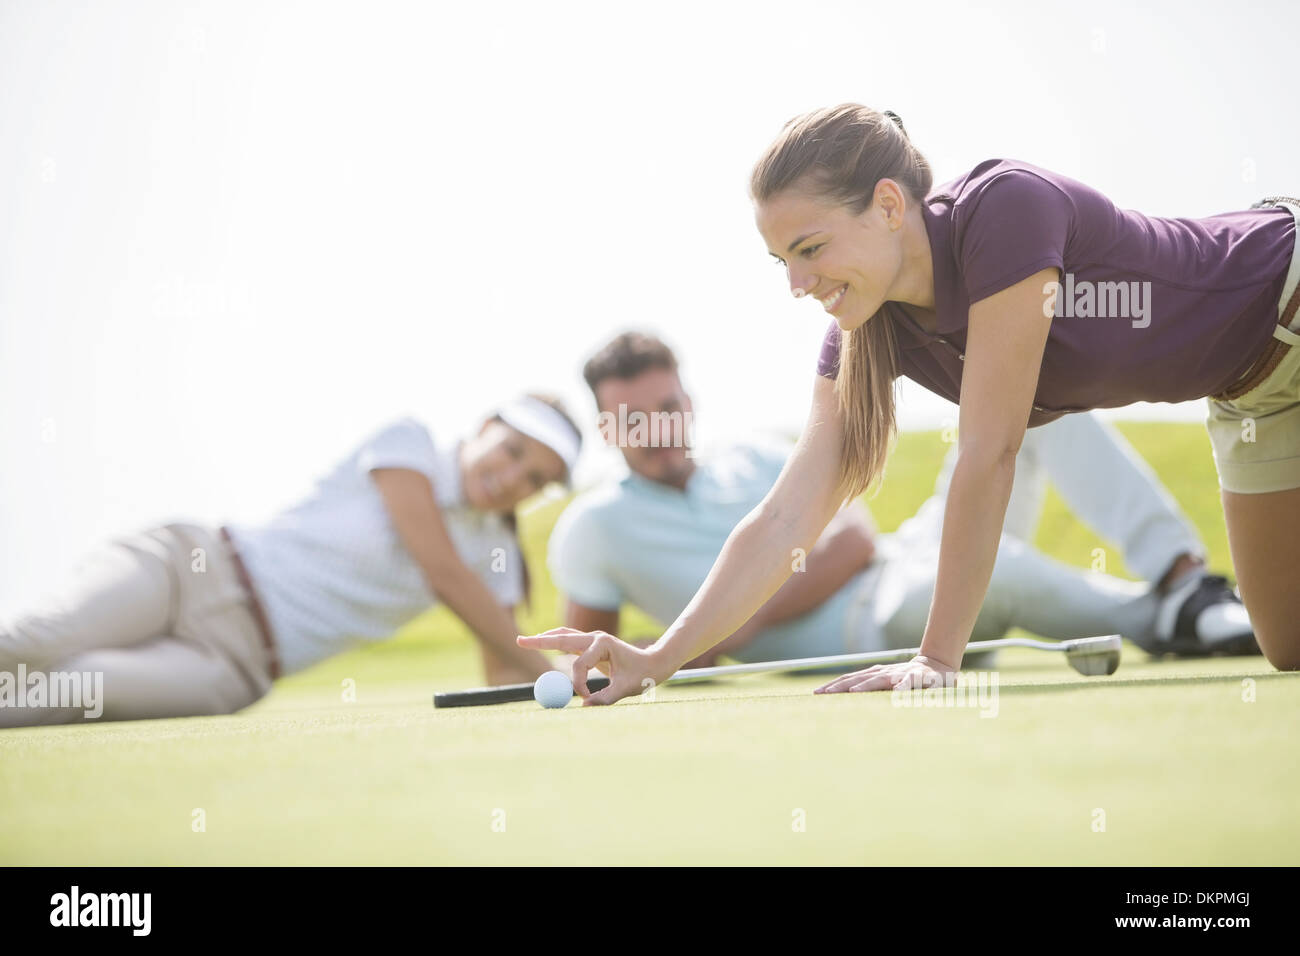 Friends watching woman flick golf ball toward hole - Stock Image